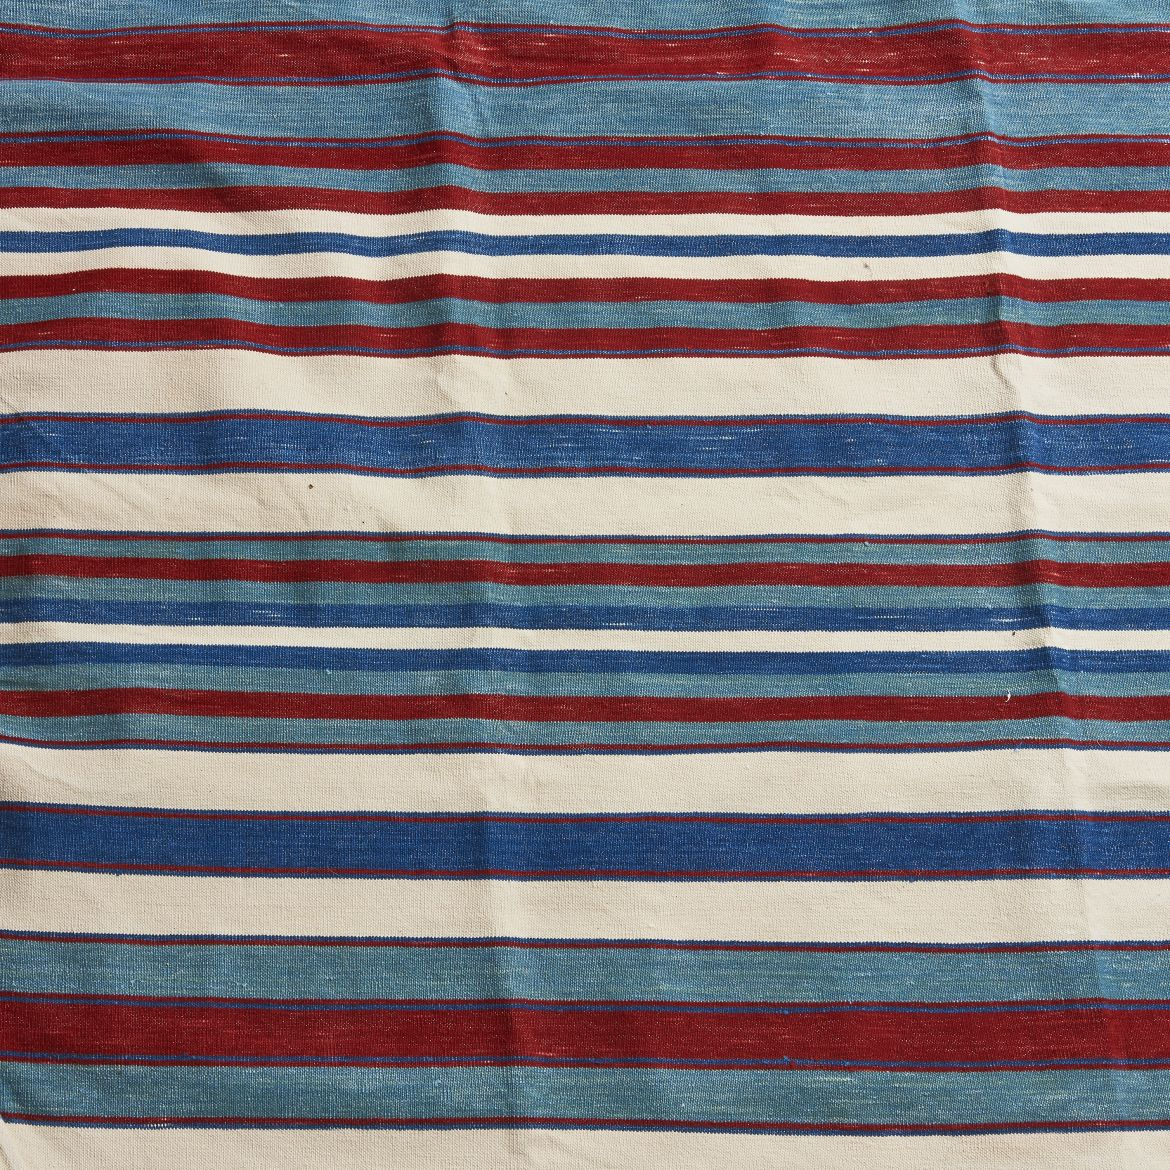 Uneven Striped Red Blue And Indigo Dhurrie